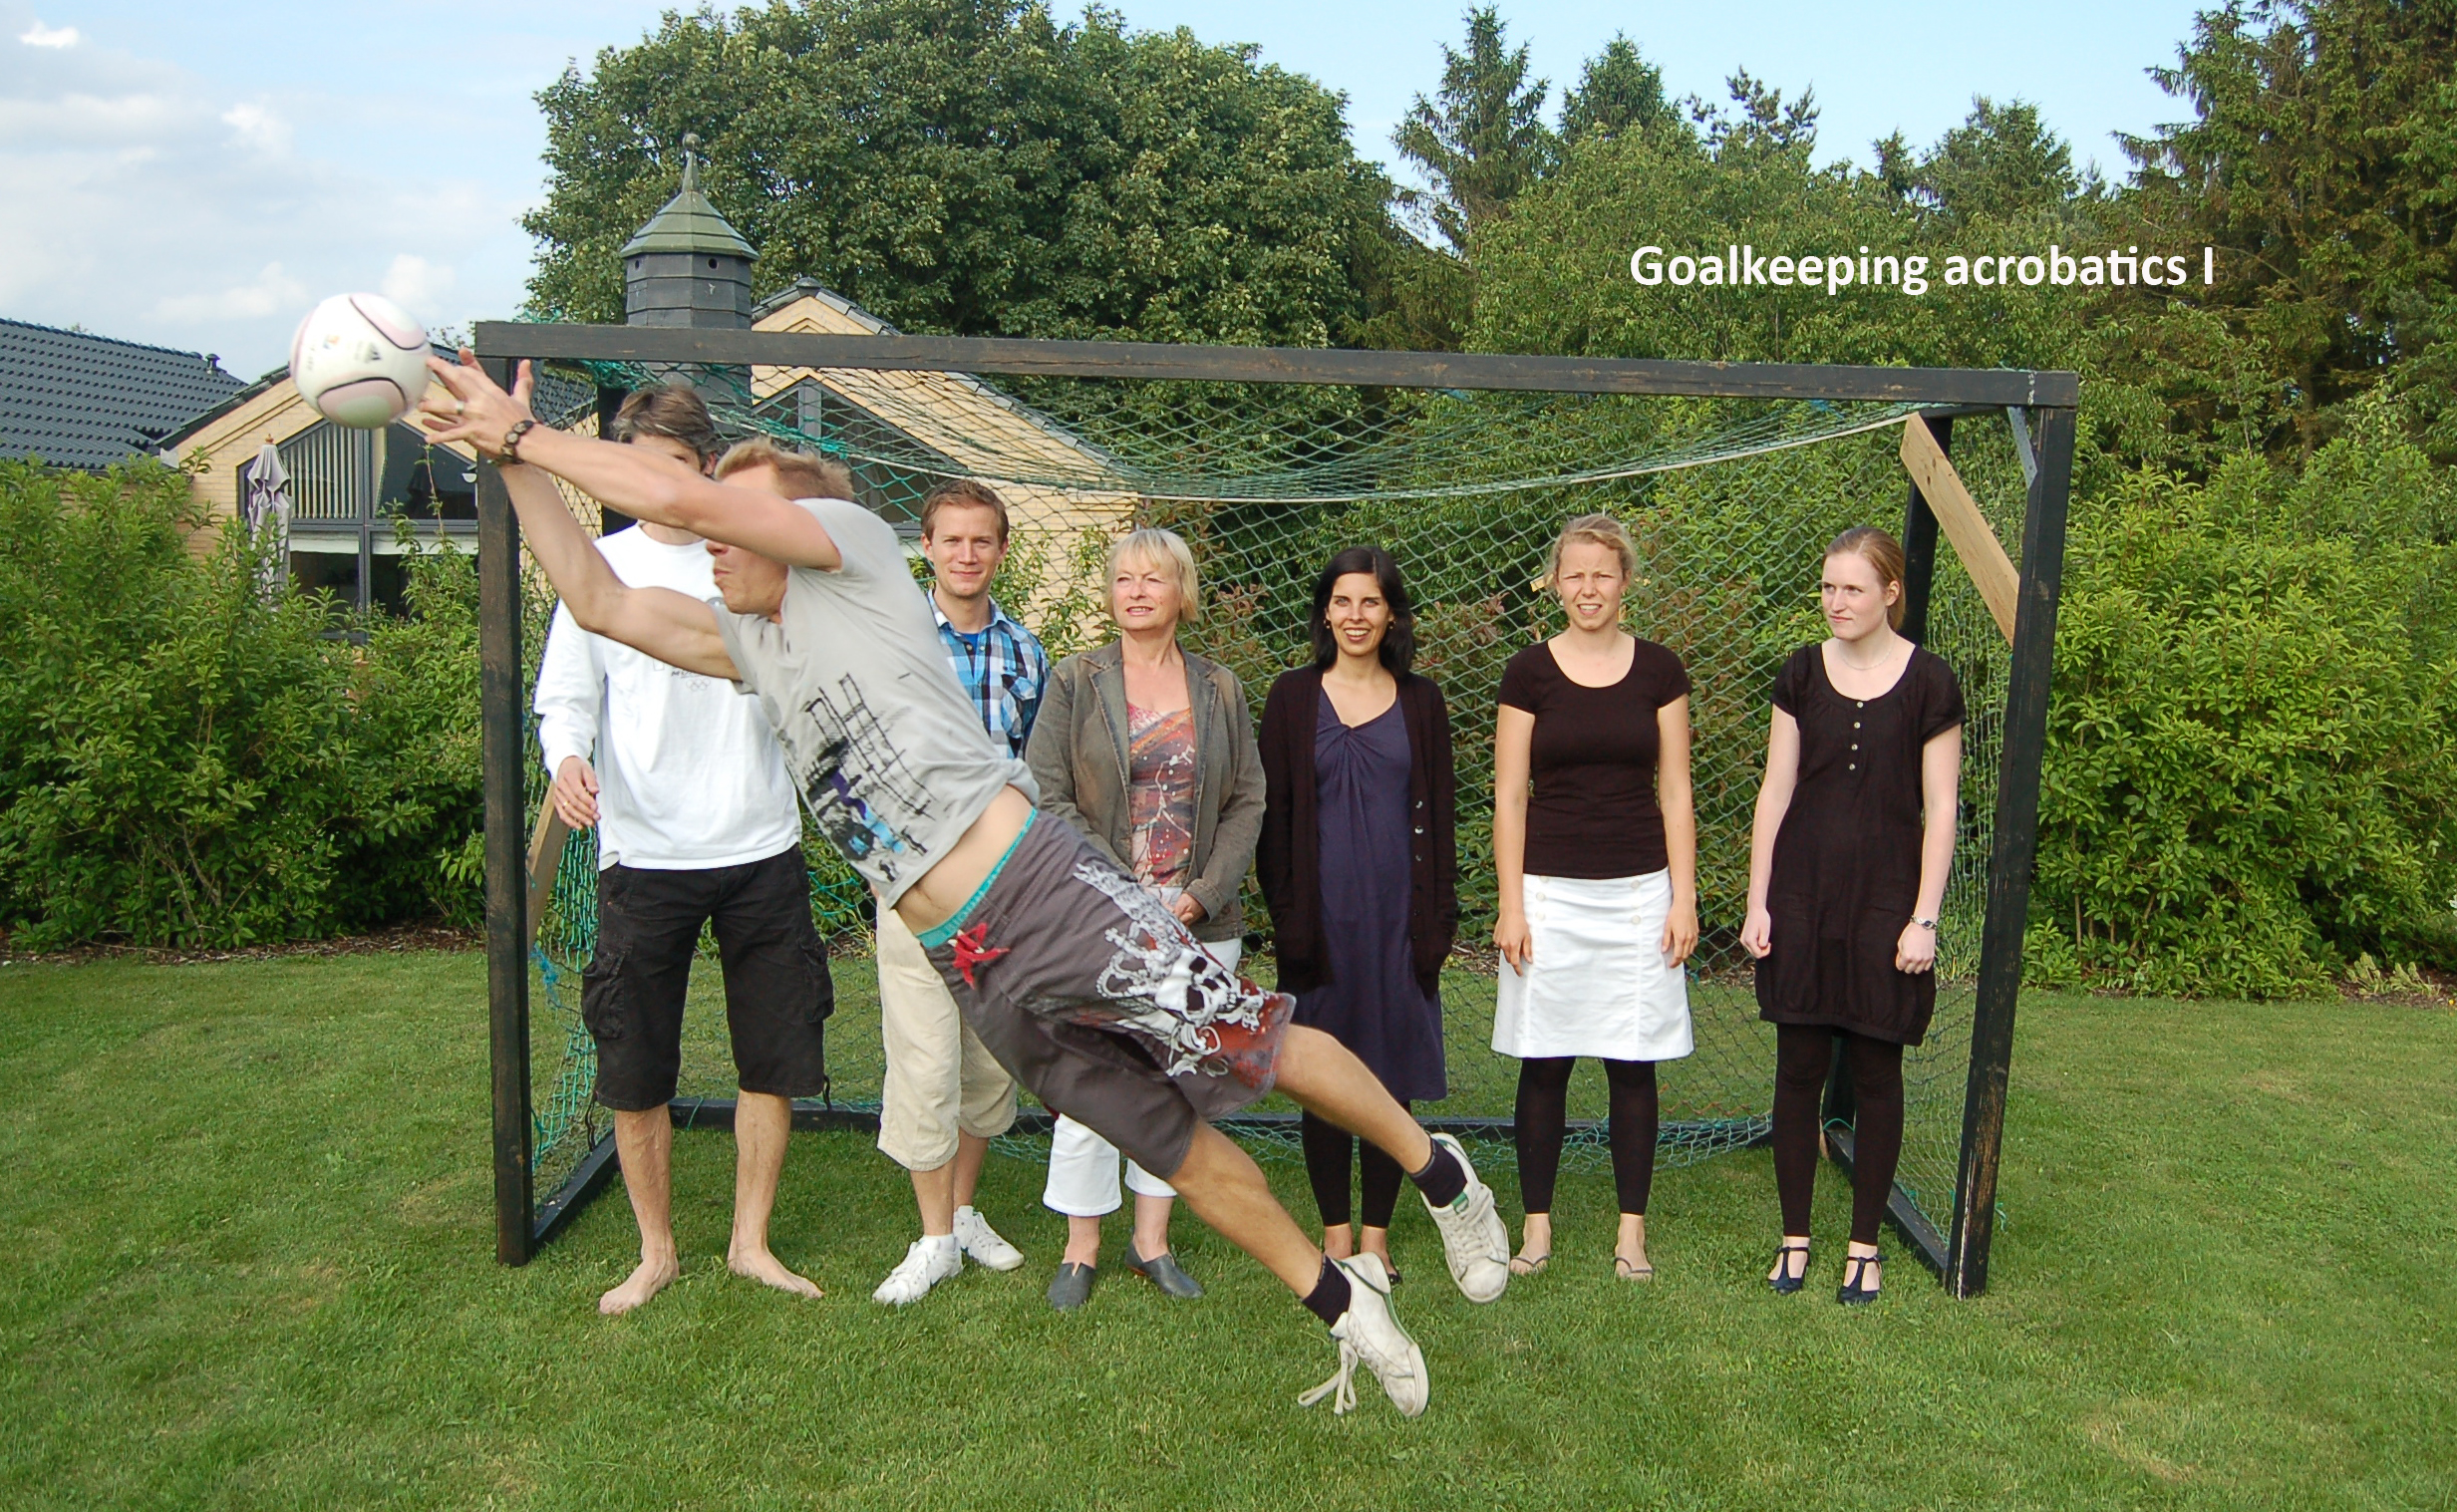 Goalkeeping acrobatics I.jpg